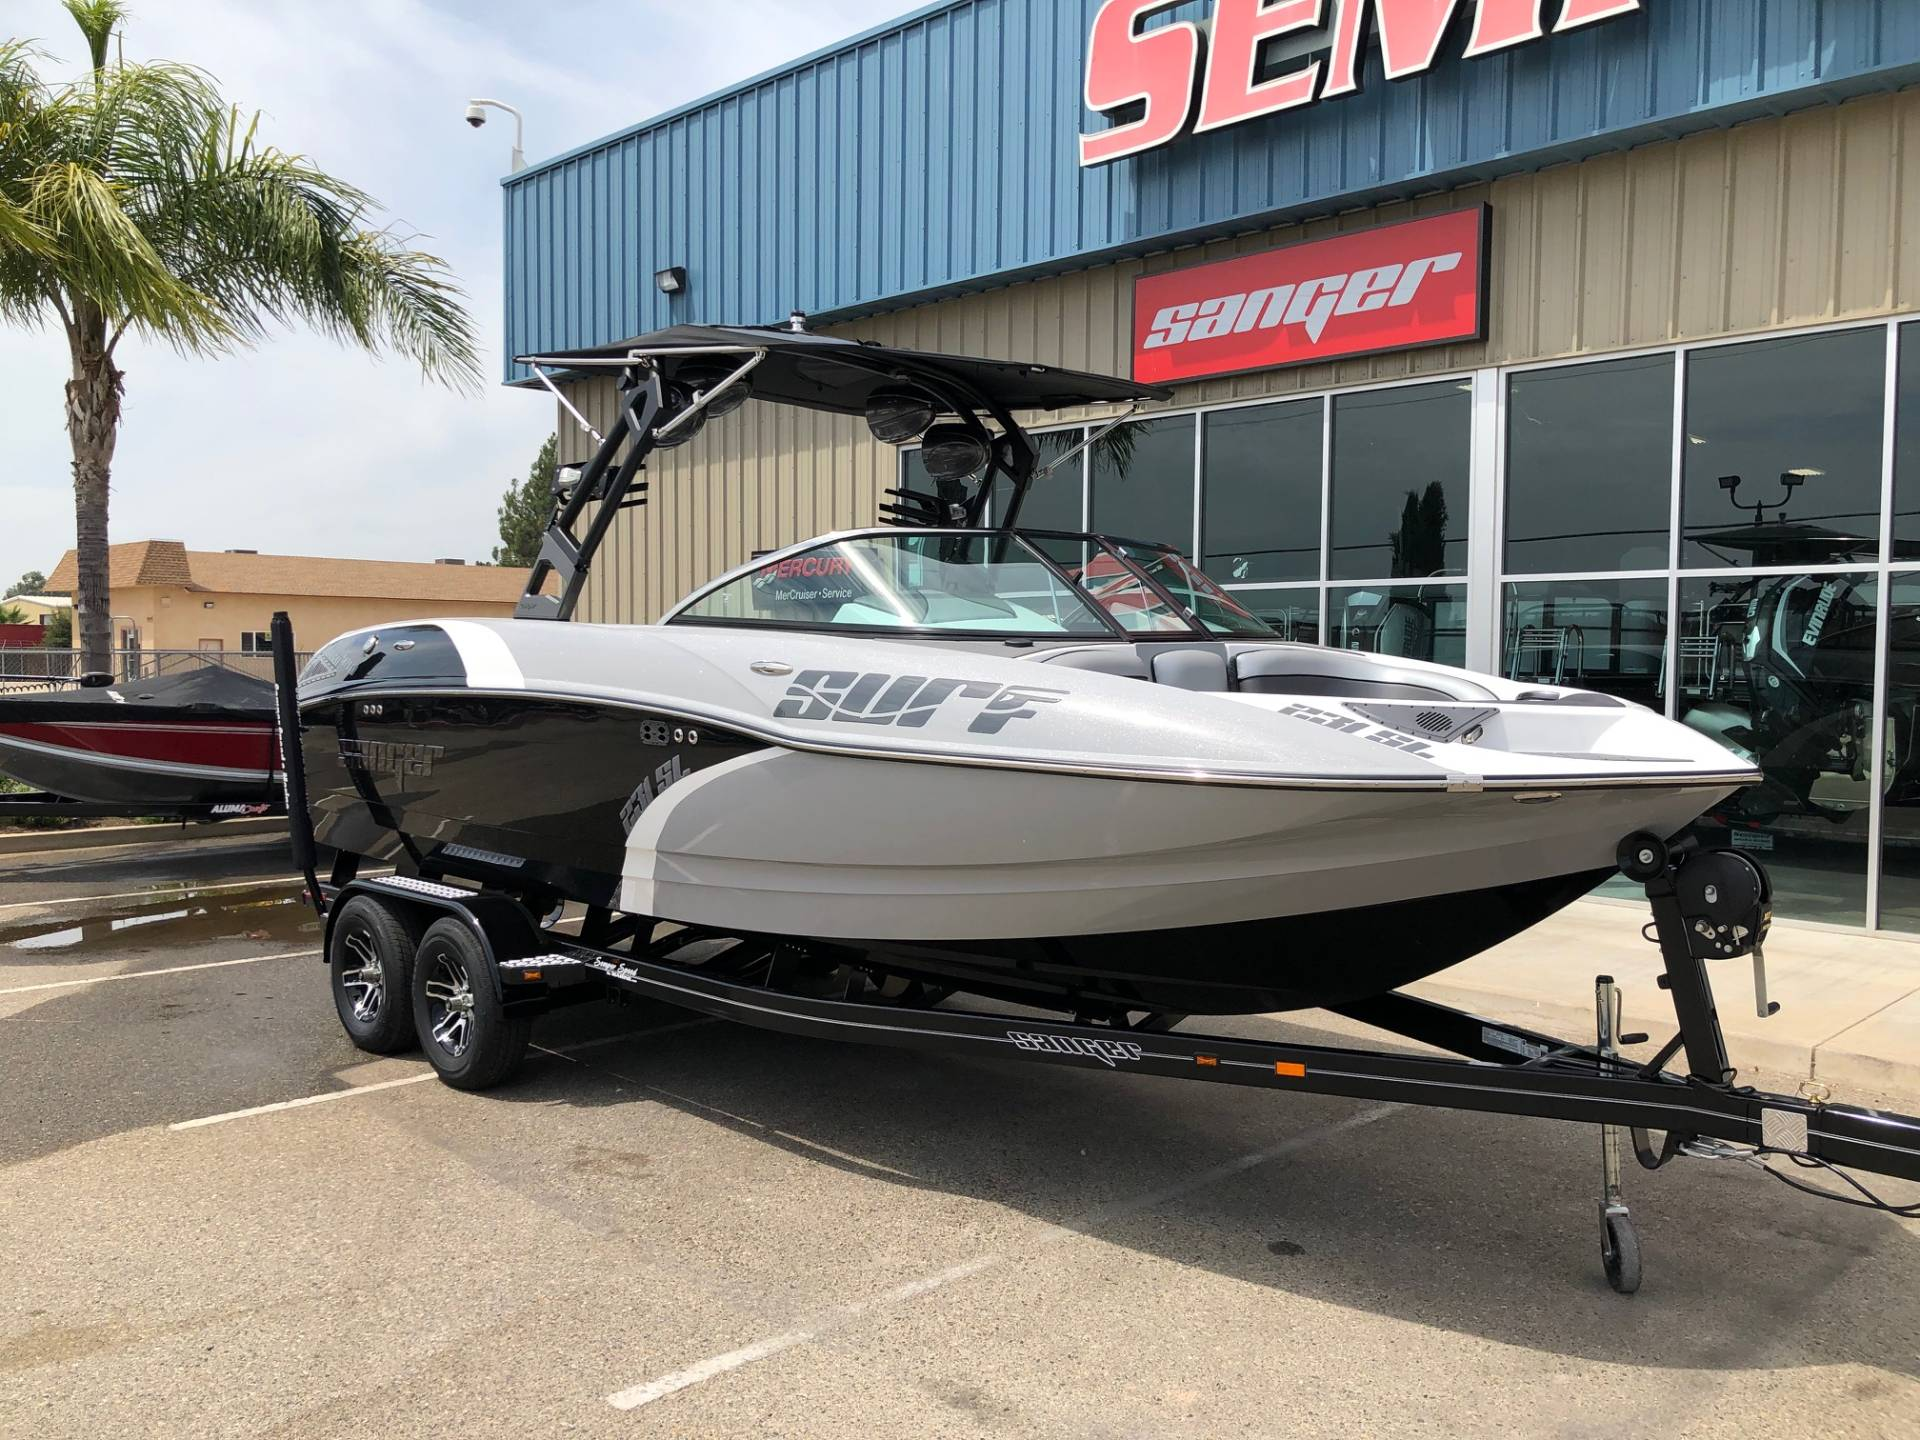 2020 Sanger Boats 231 SLE in Madera, California - Photo 3